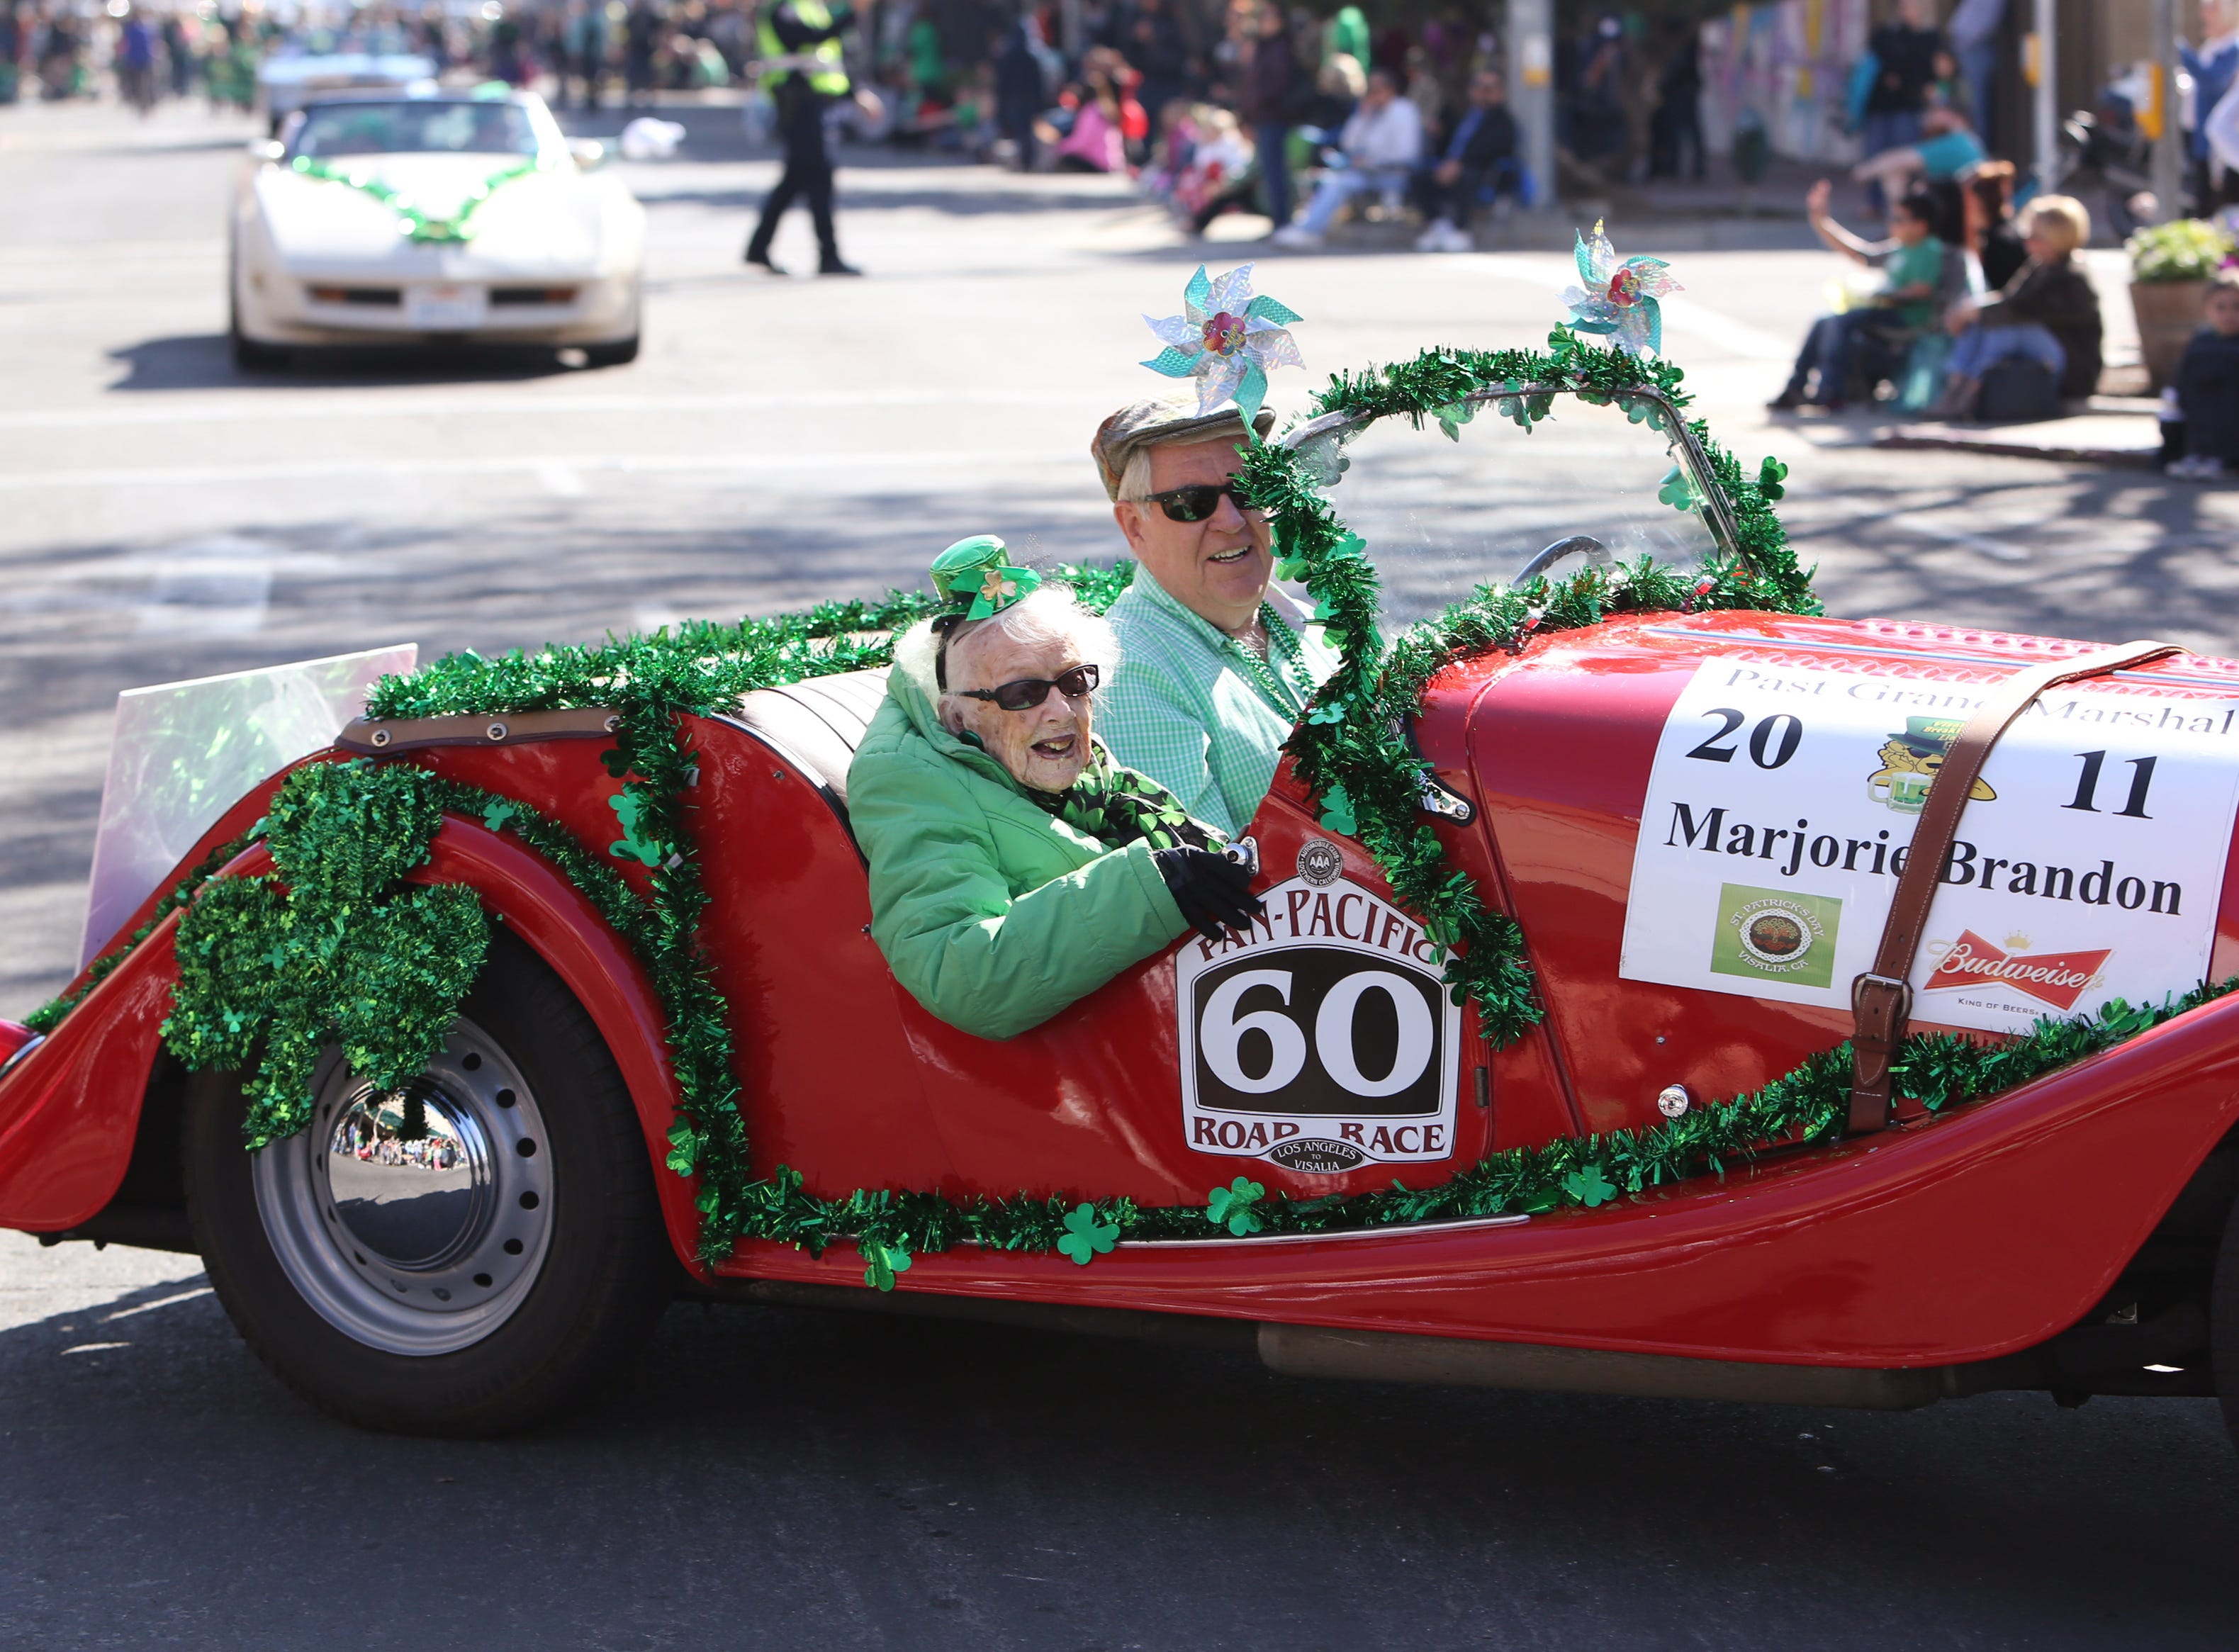 106 year old Marjorie Brandon waves to the overflowing crowds at this year's St. Patrick's Day parade rolling through Main Street Saturday, March 16, 2019 in Visalia, Calif.